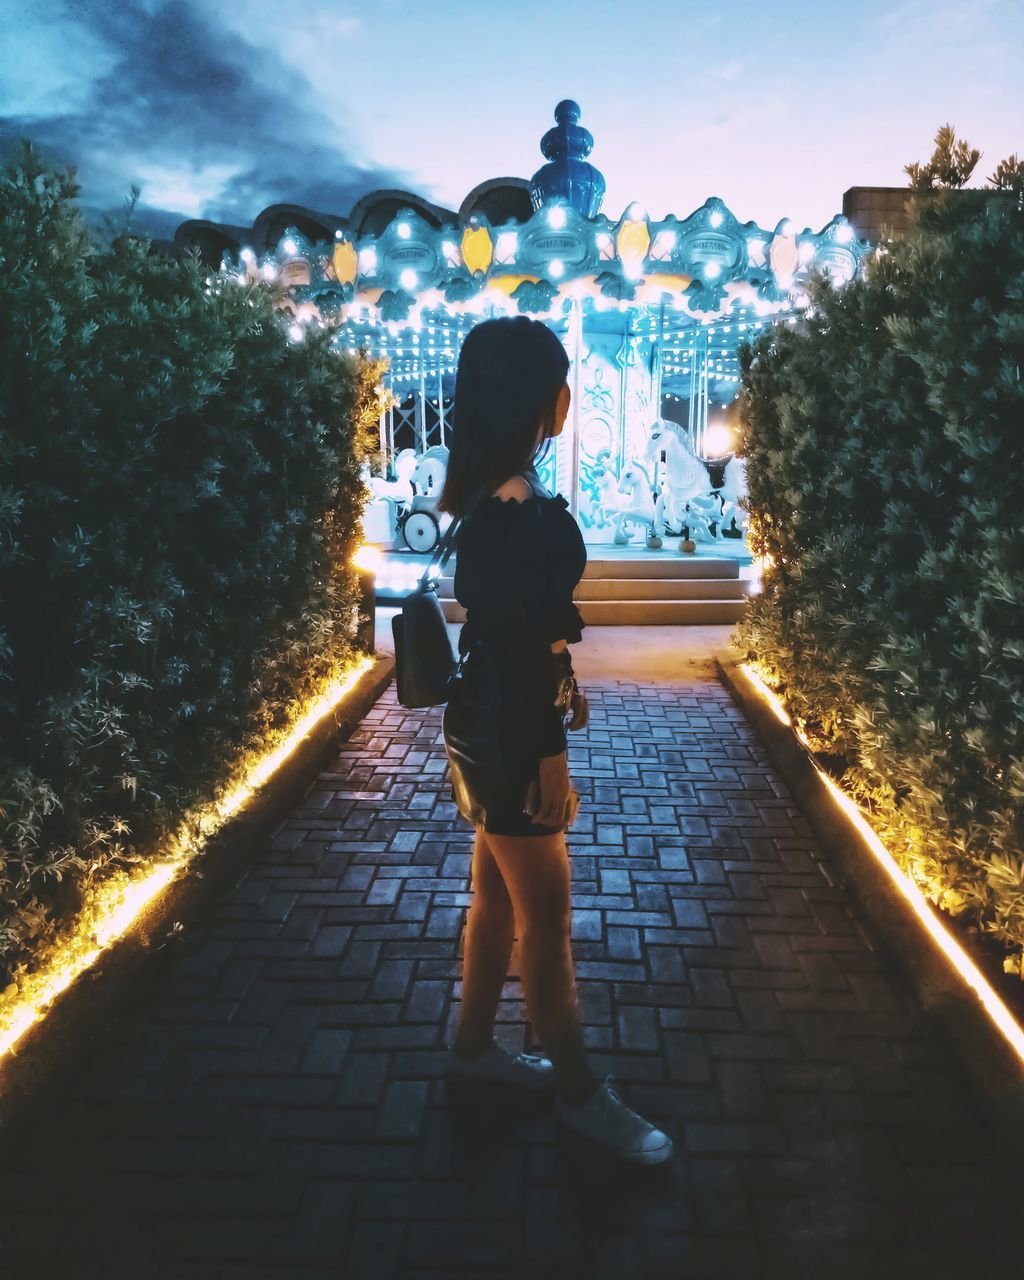 REAR VIEW OF WOMAN STANDING ON FOOTPATH AT NIGHT